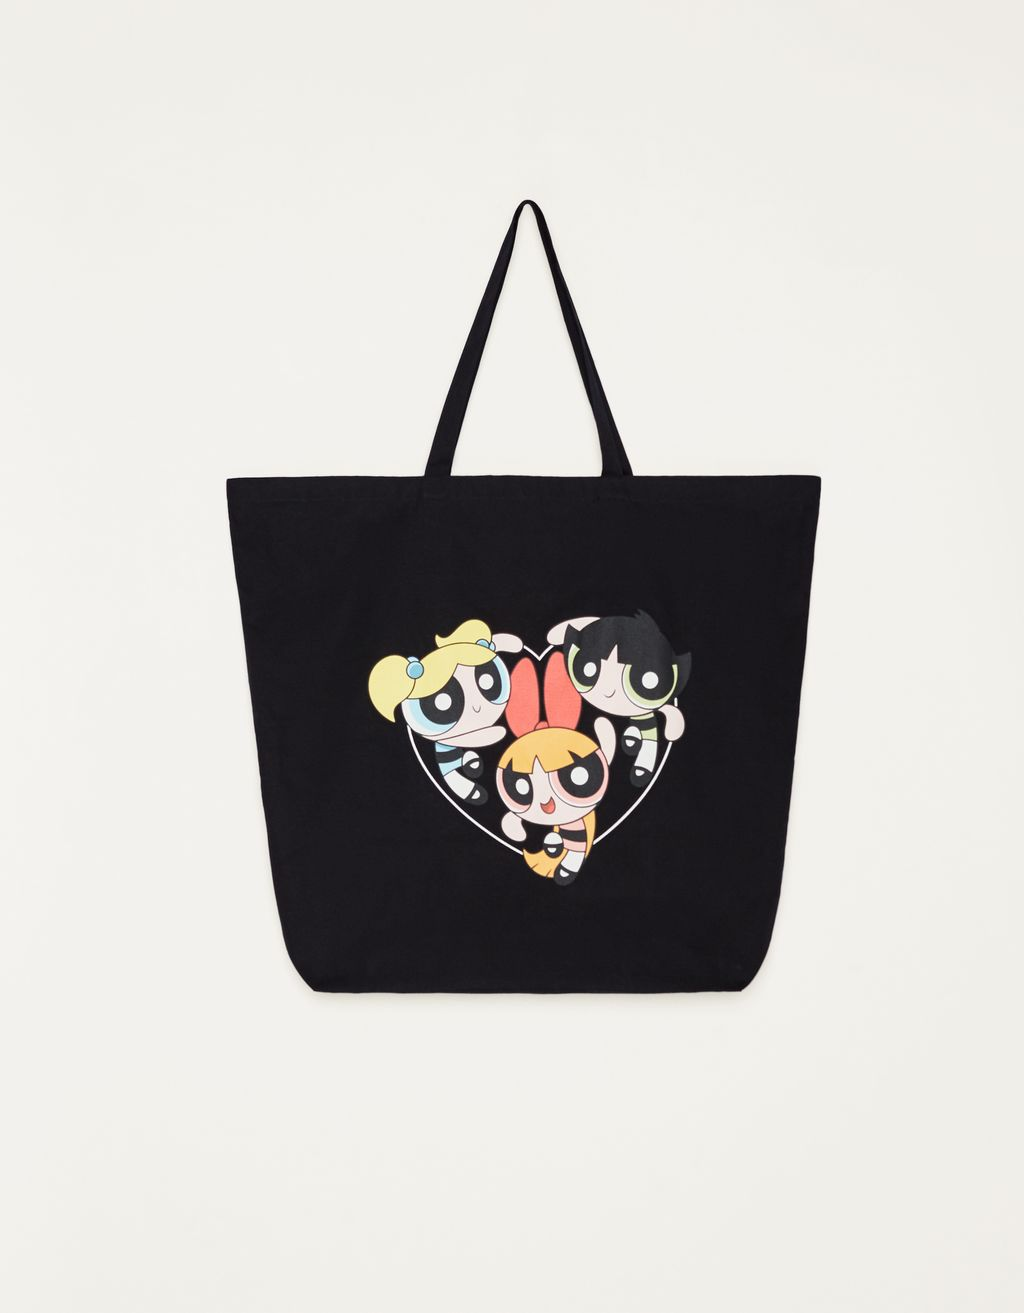 Torba shopper The Powerpuff Girls x Bershka